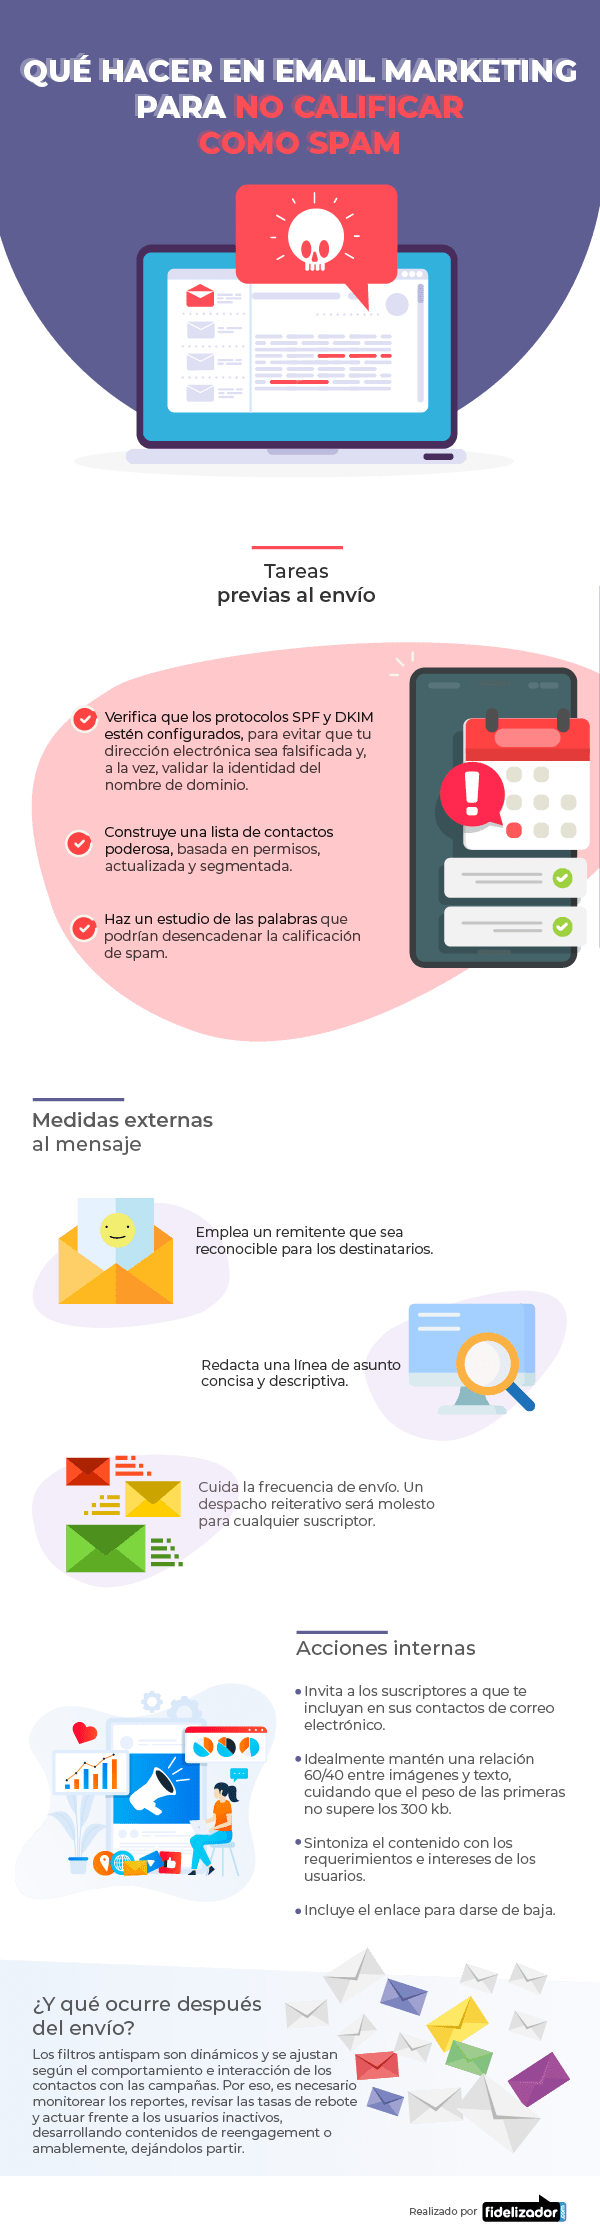 Qué hacer en Email Marketing para no calificar como spam